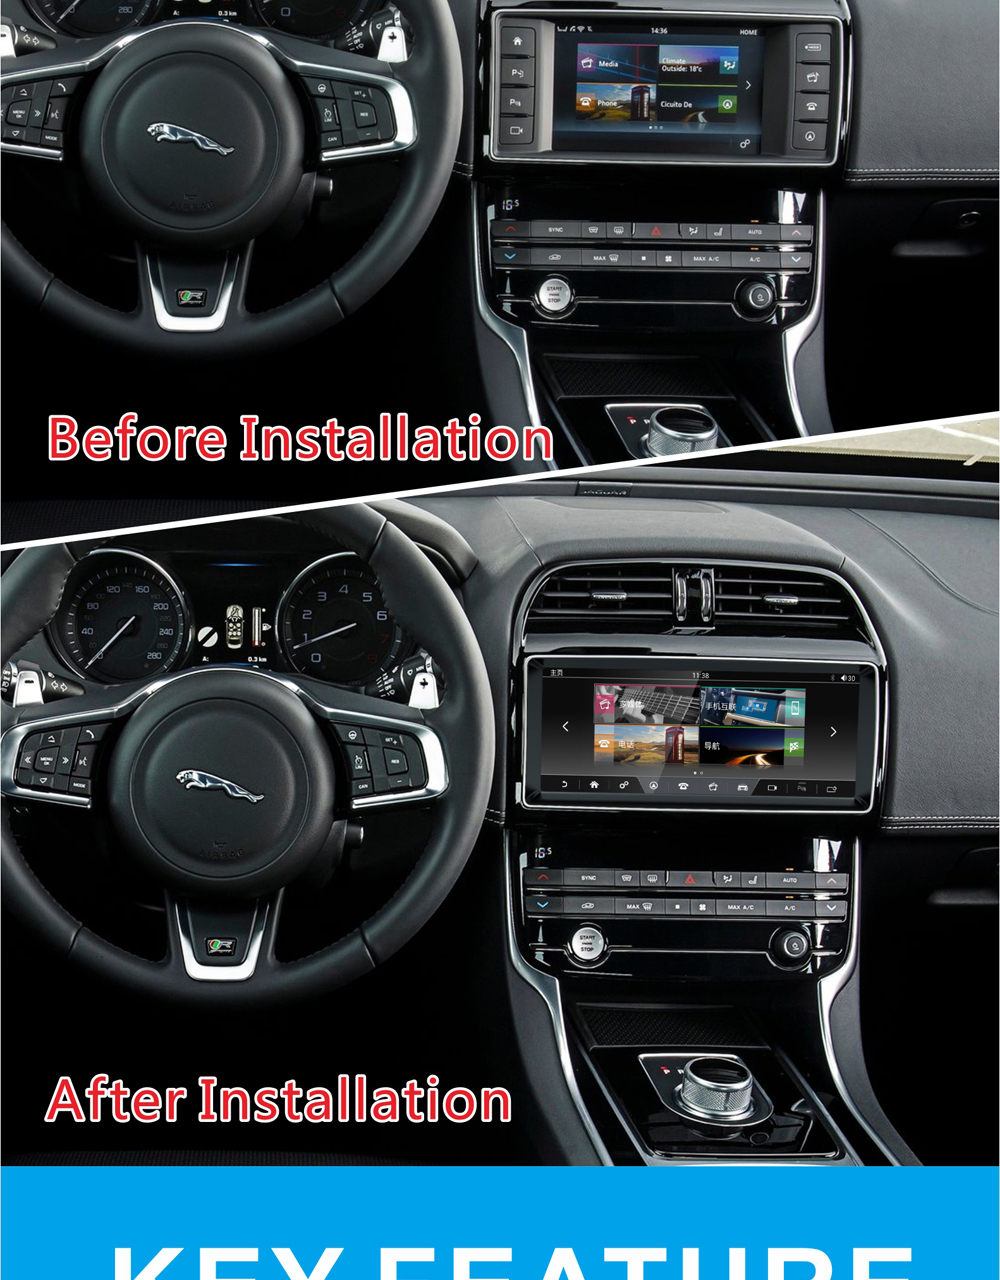 Android Jaguar navigation 1618 after installation